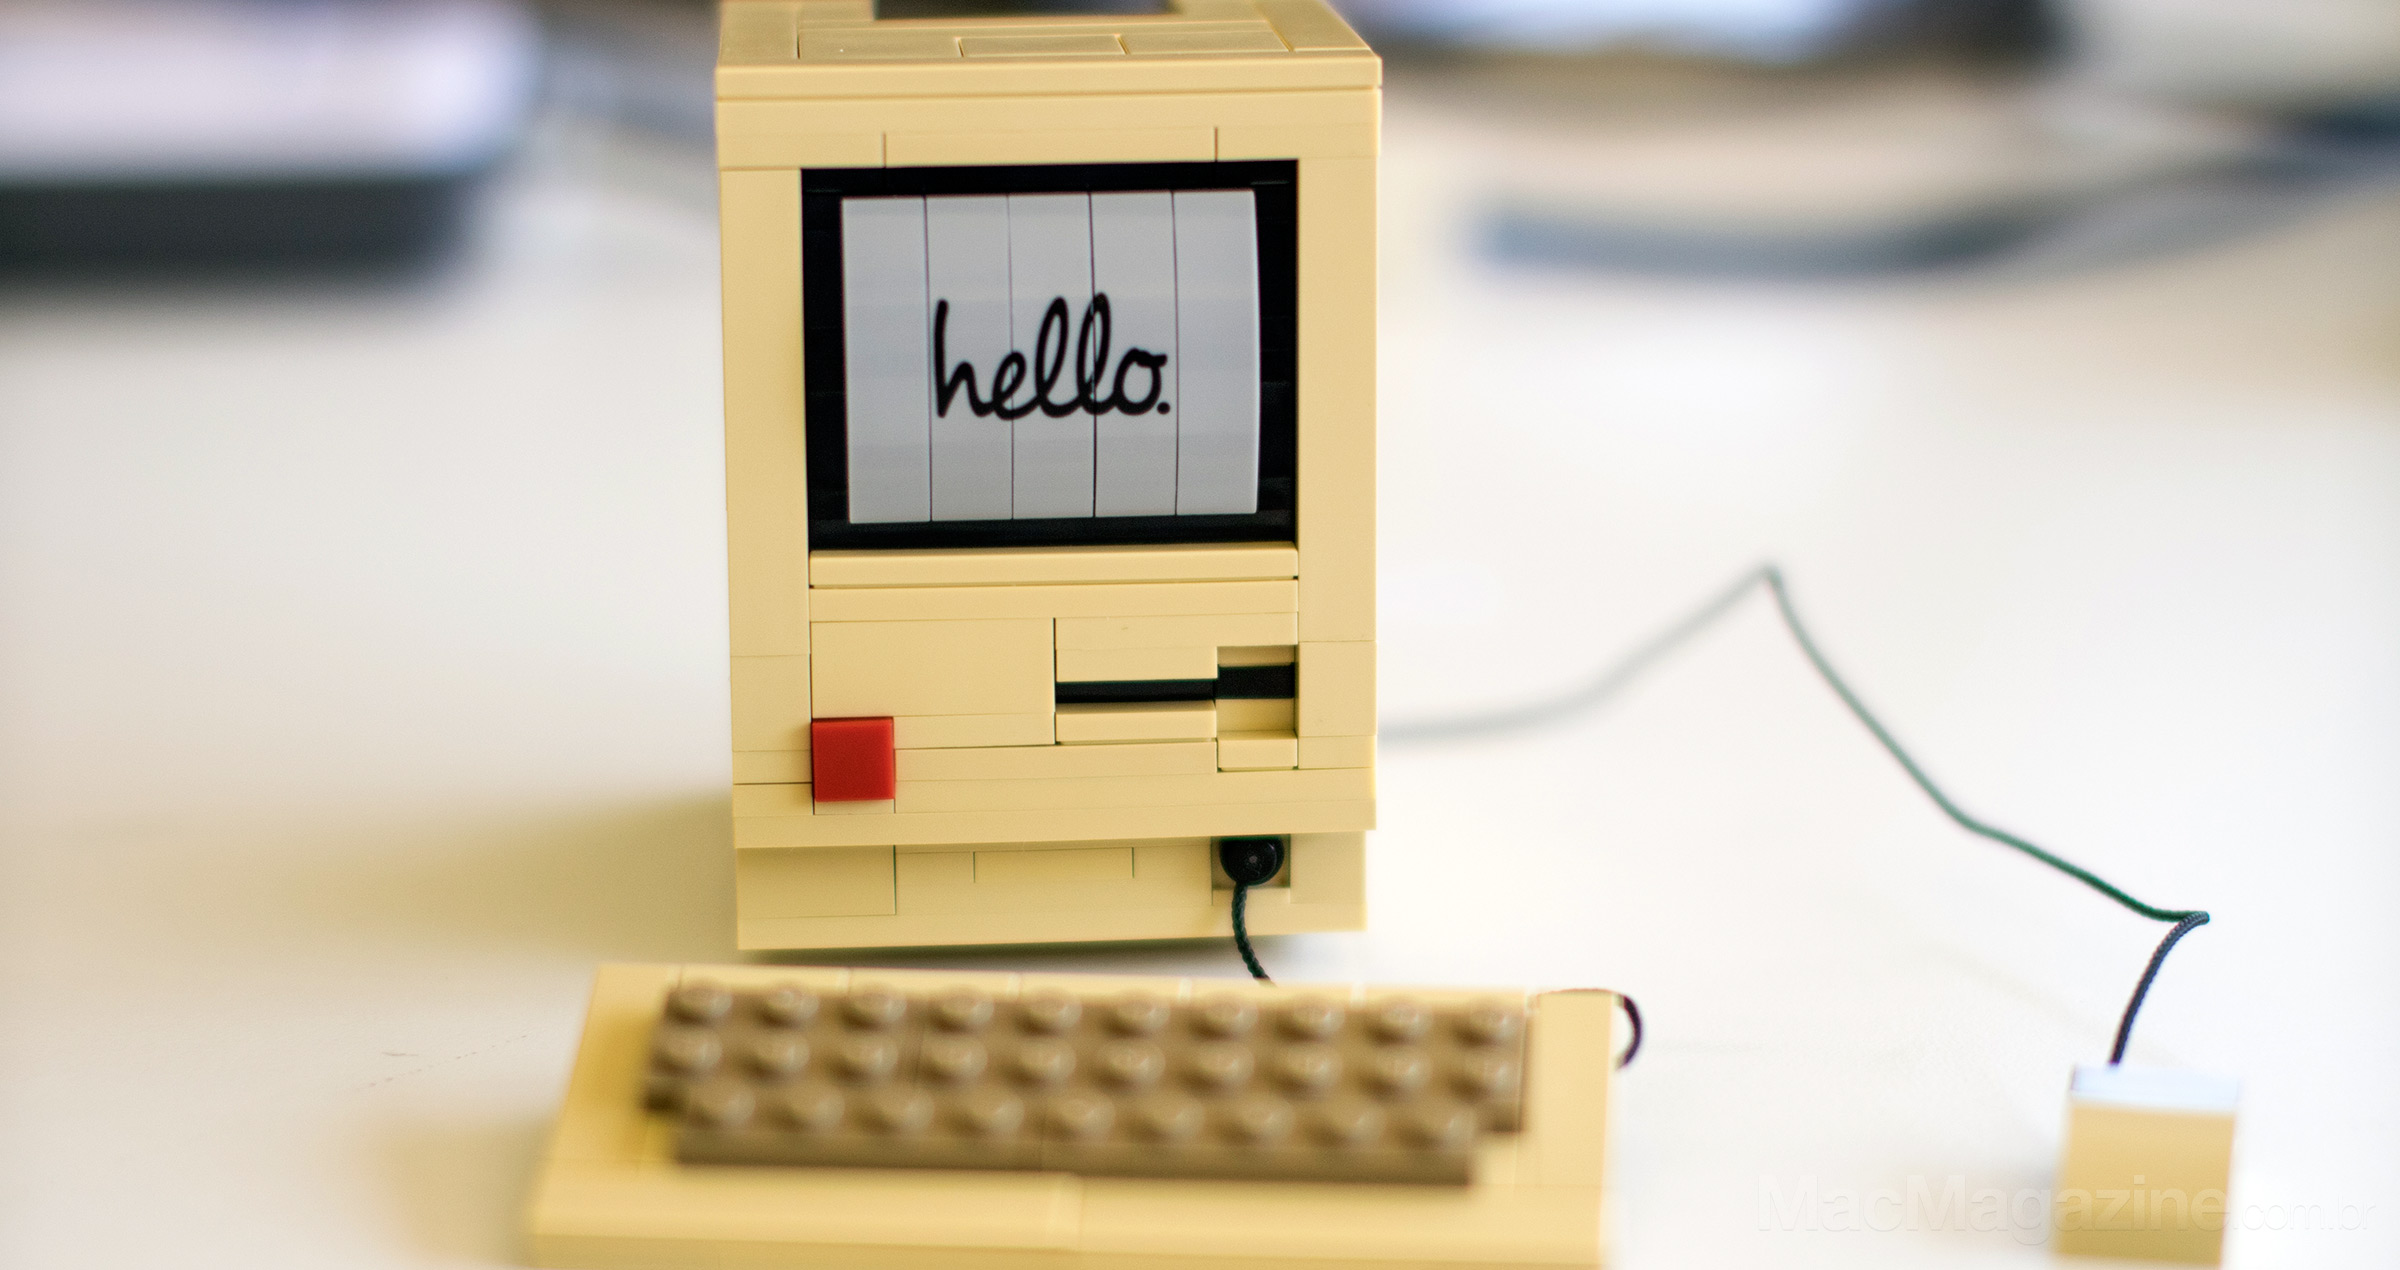 Lego - My First Computer